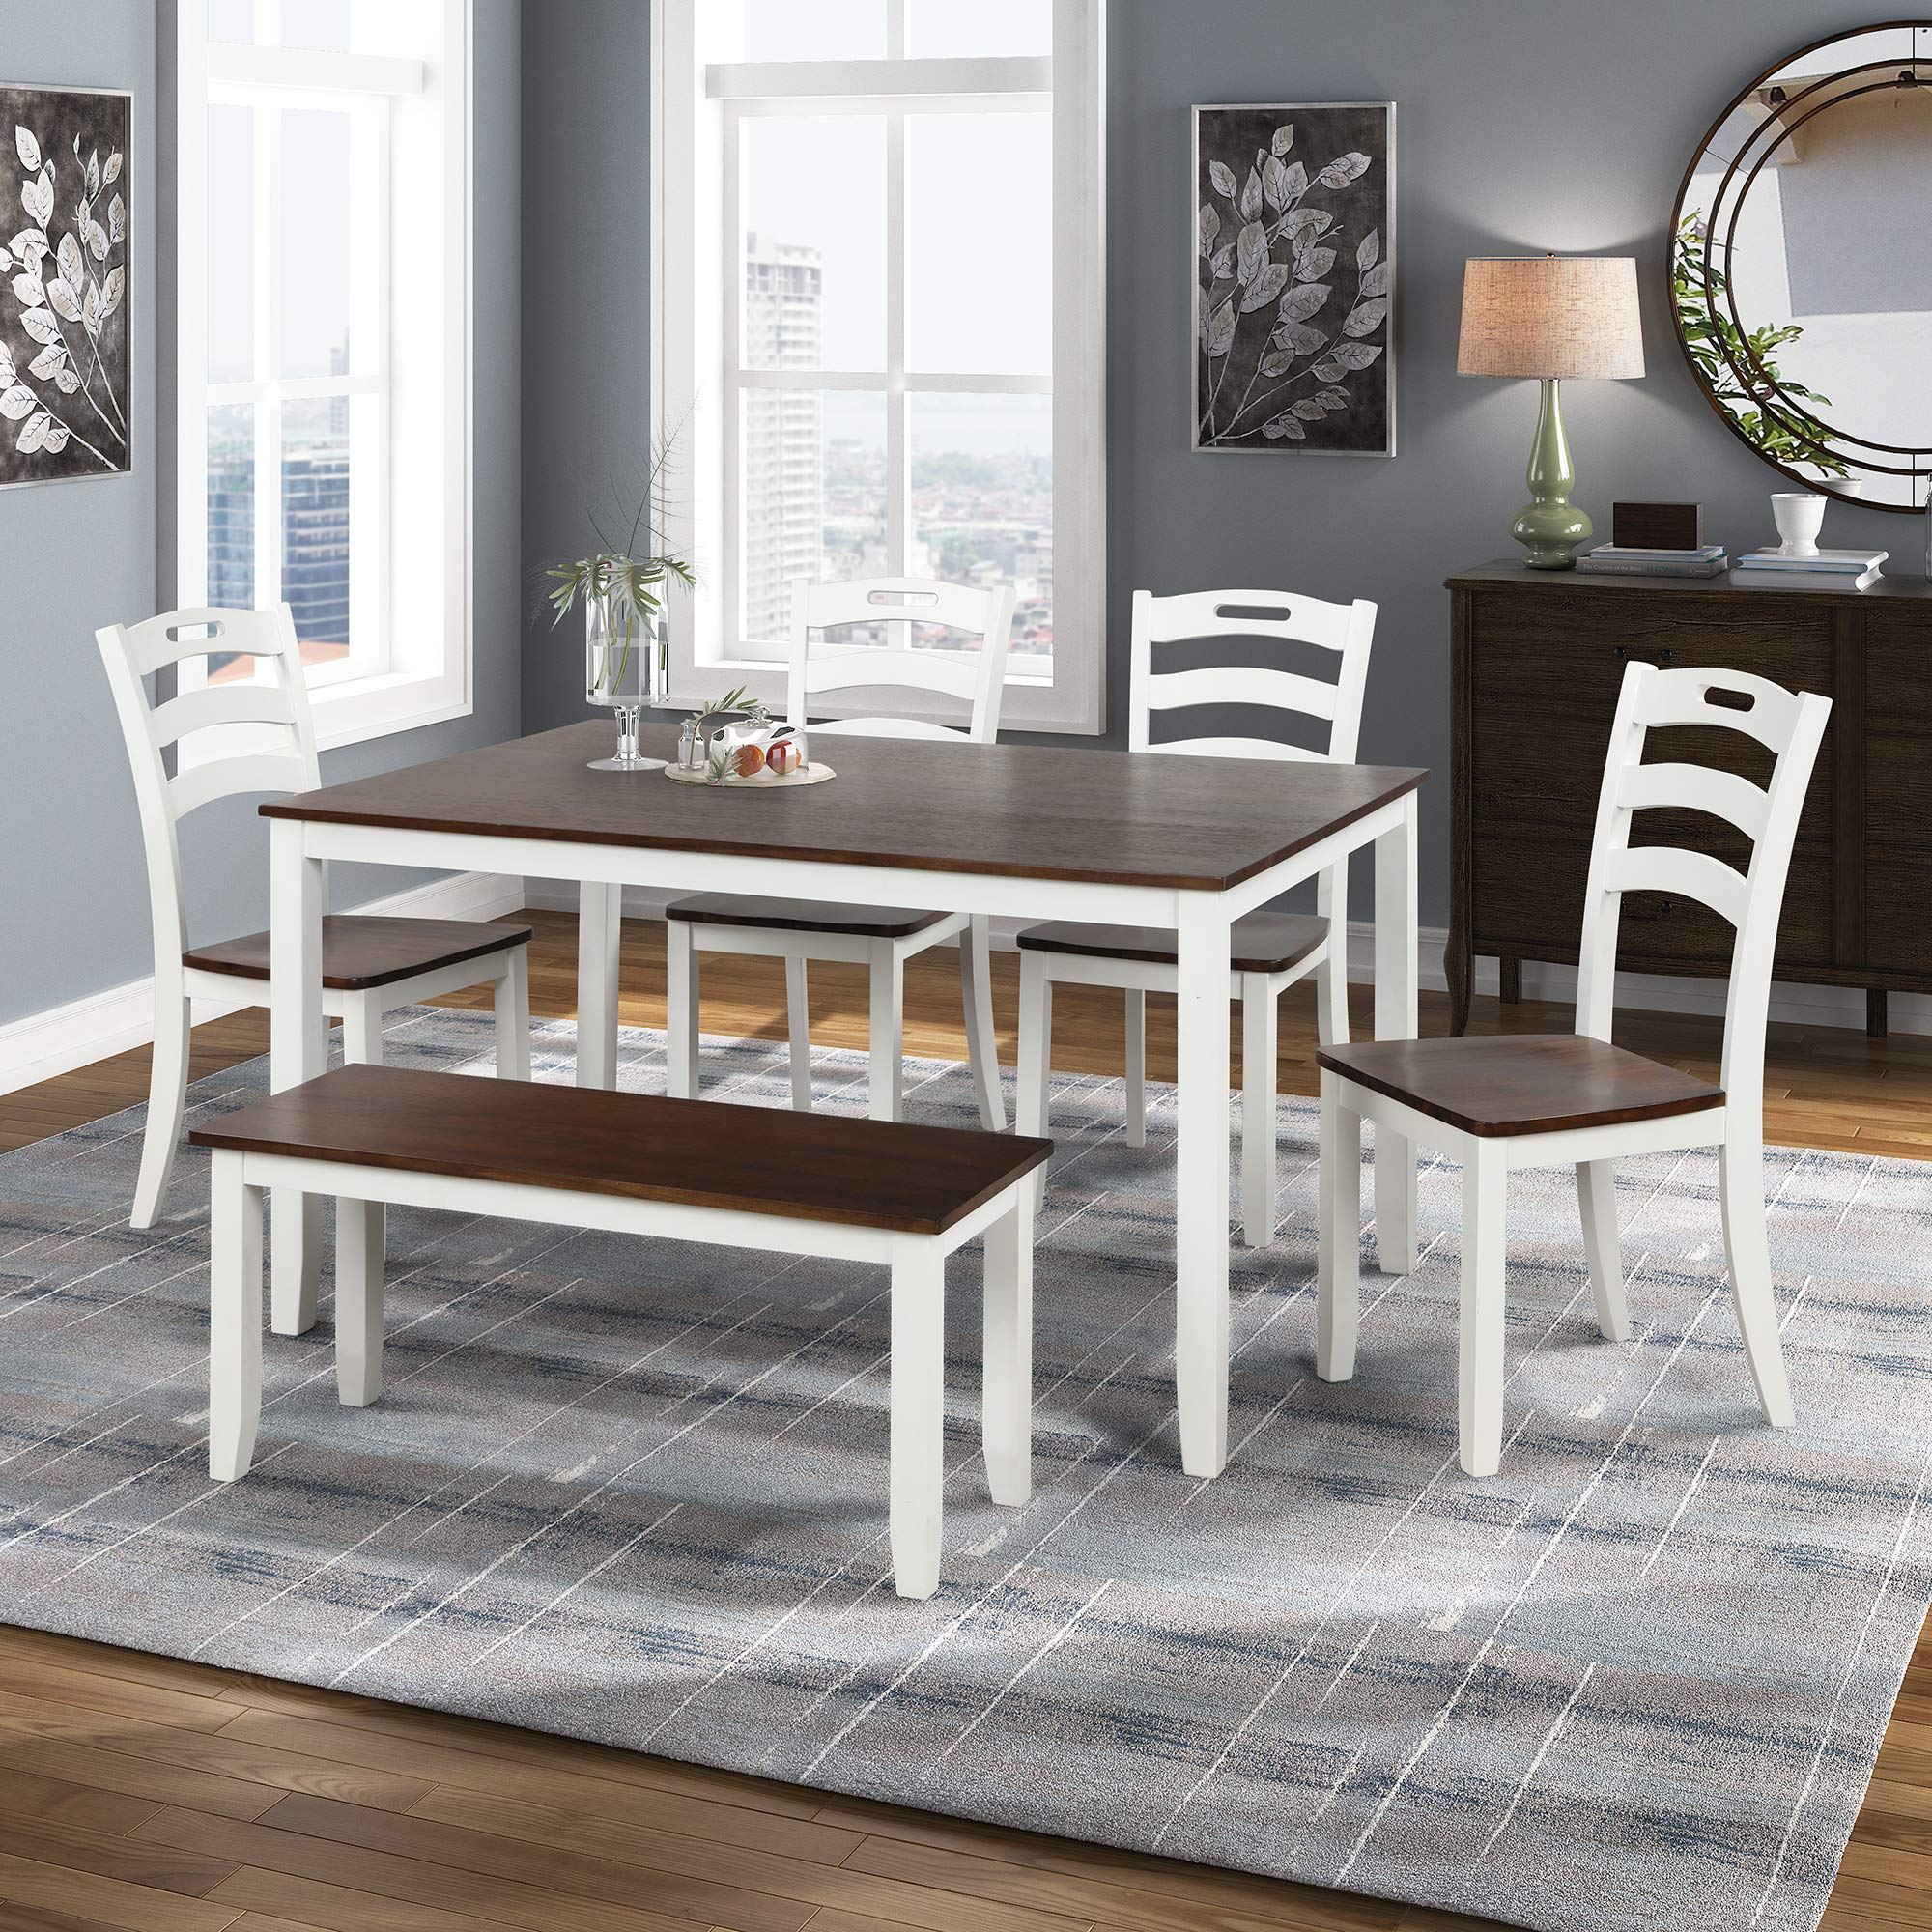 Amazon Com Merax Dining Table Set 6 Piece Wood Kitchen Table Set Home Furniture Table Set With Chairs Bench White Cherry Table Chair Sets